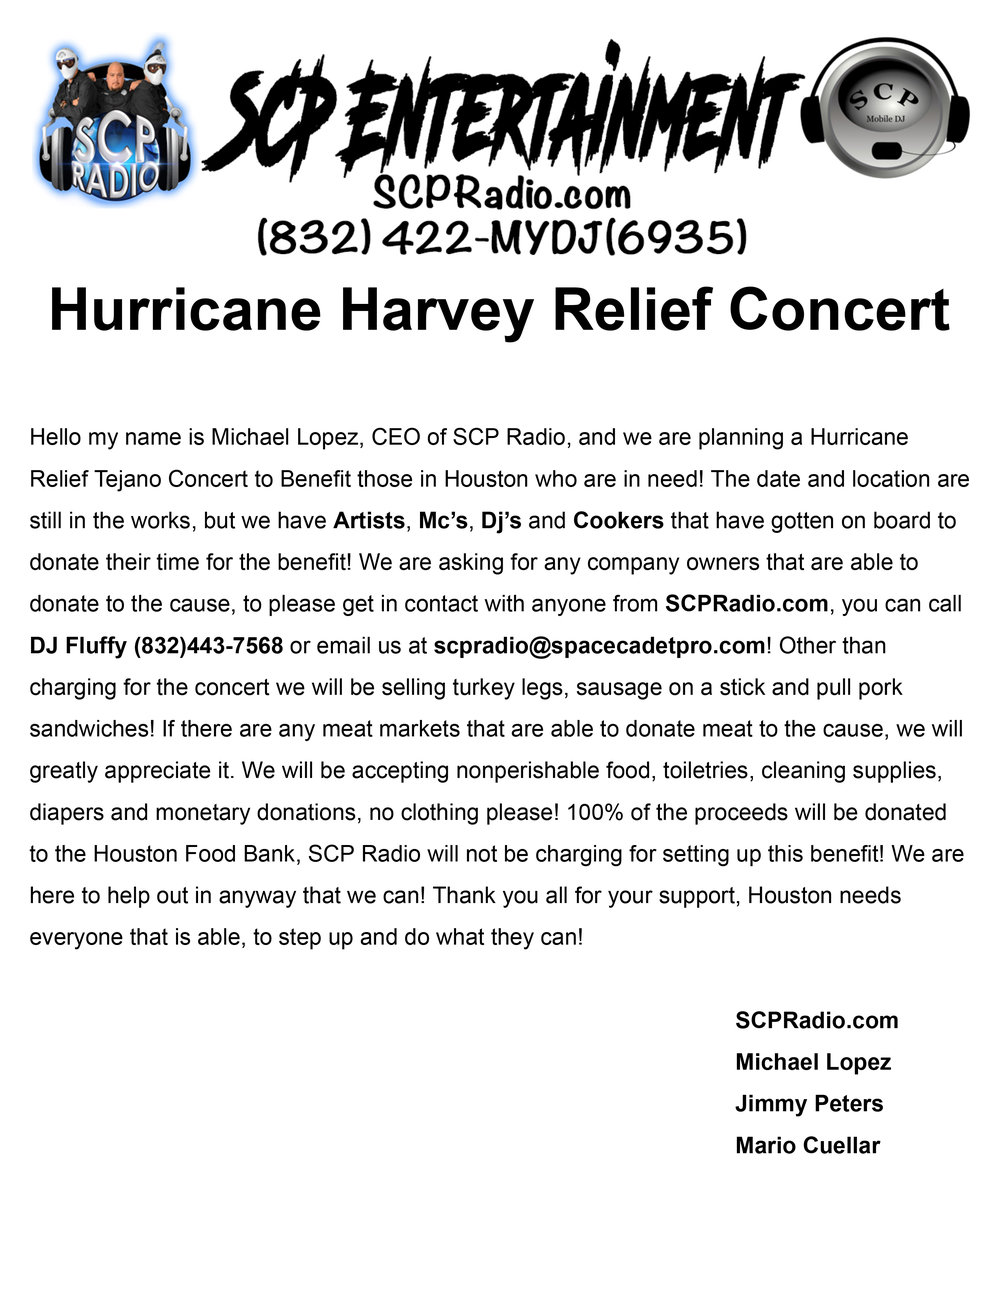 Hurricane Harvey Relief Concert.jpg